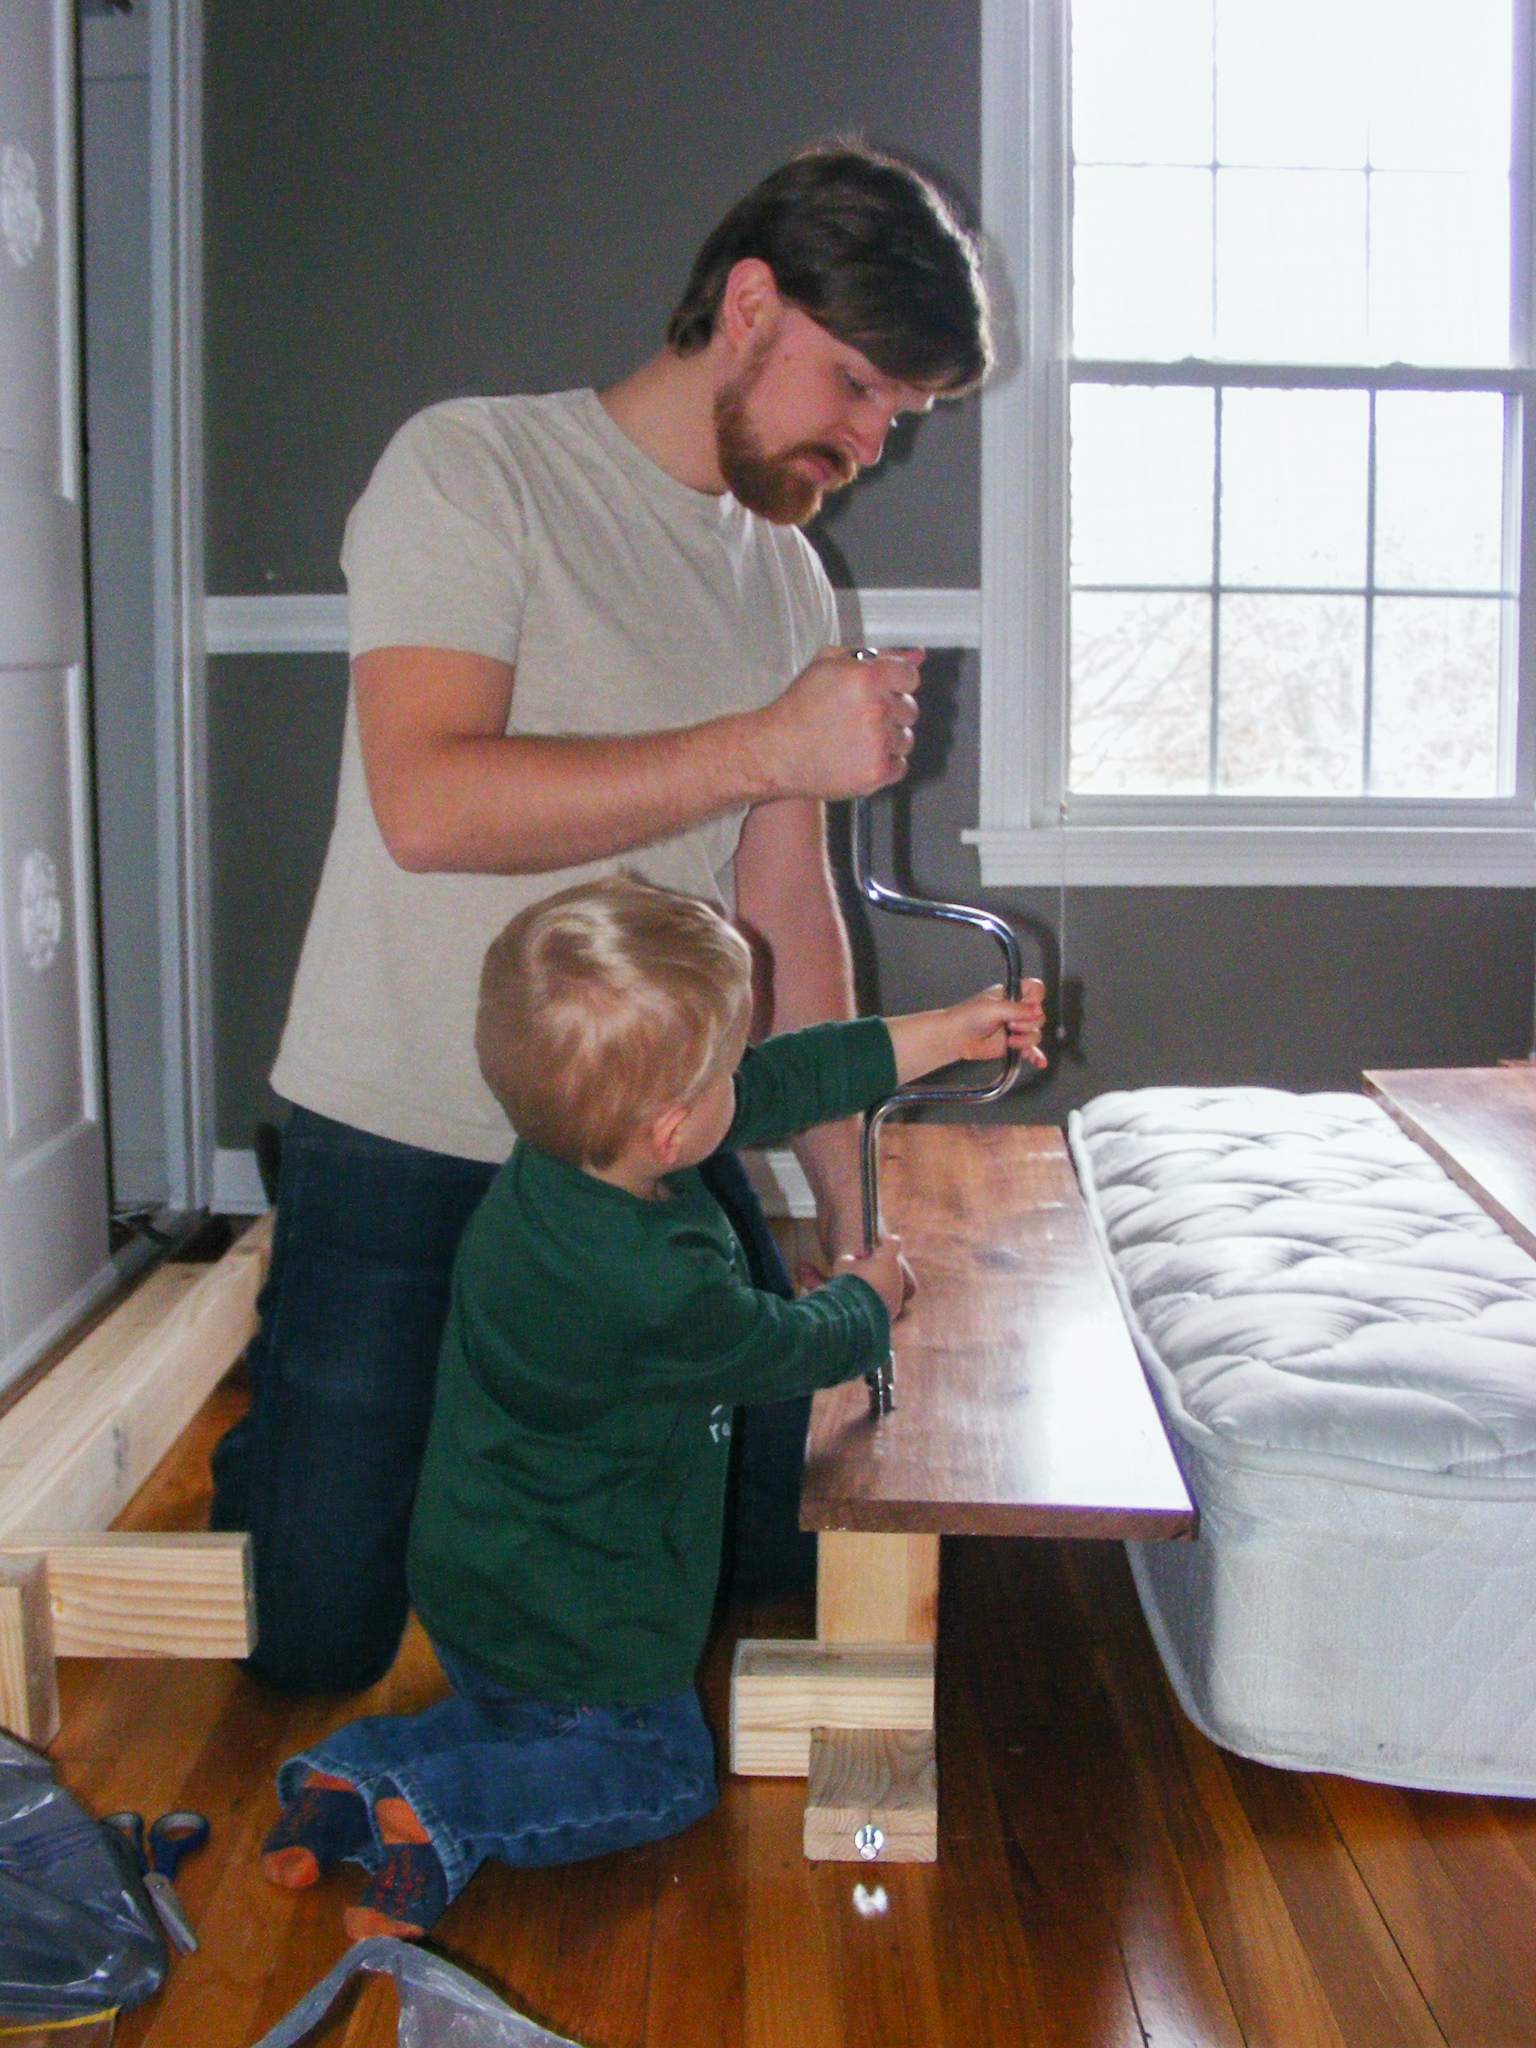 Elias helped me attach the foot board to the rail assembly.